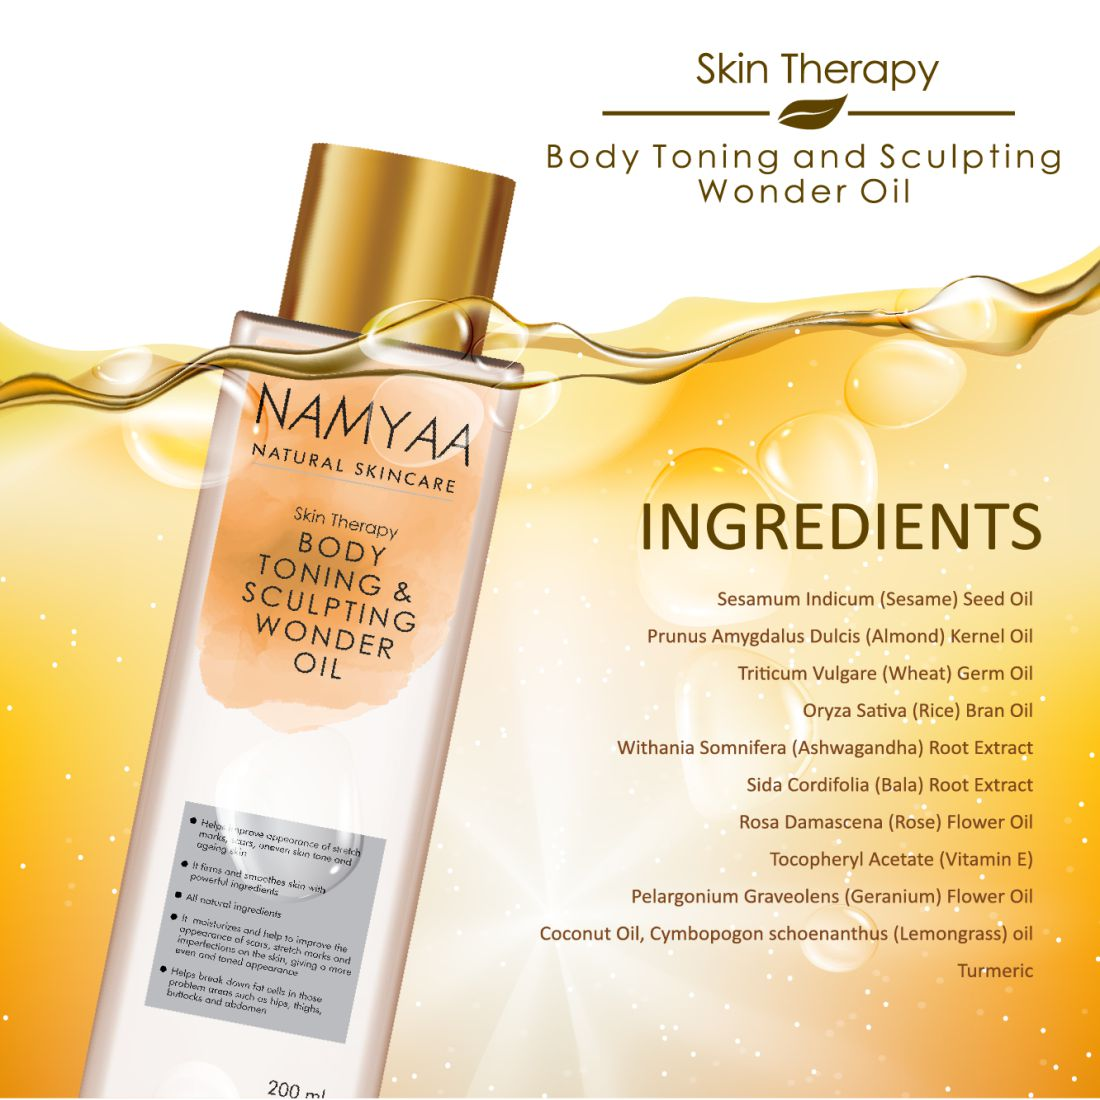 Body Toning & Sculpting Wonder Oil - Namyaa